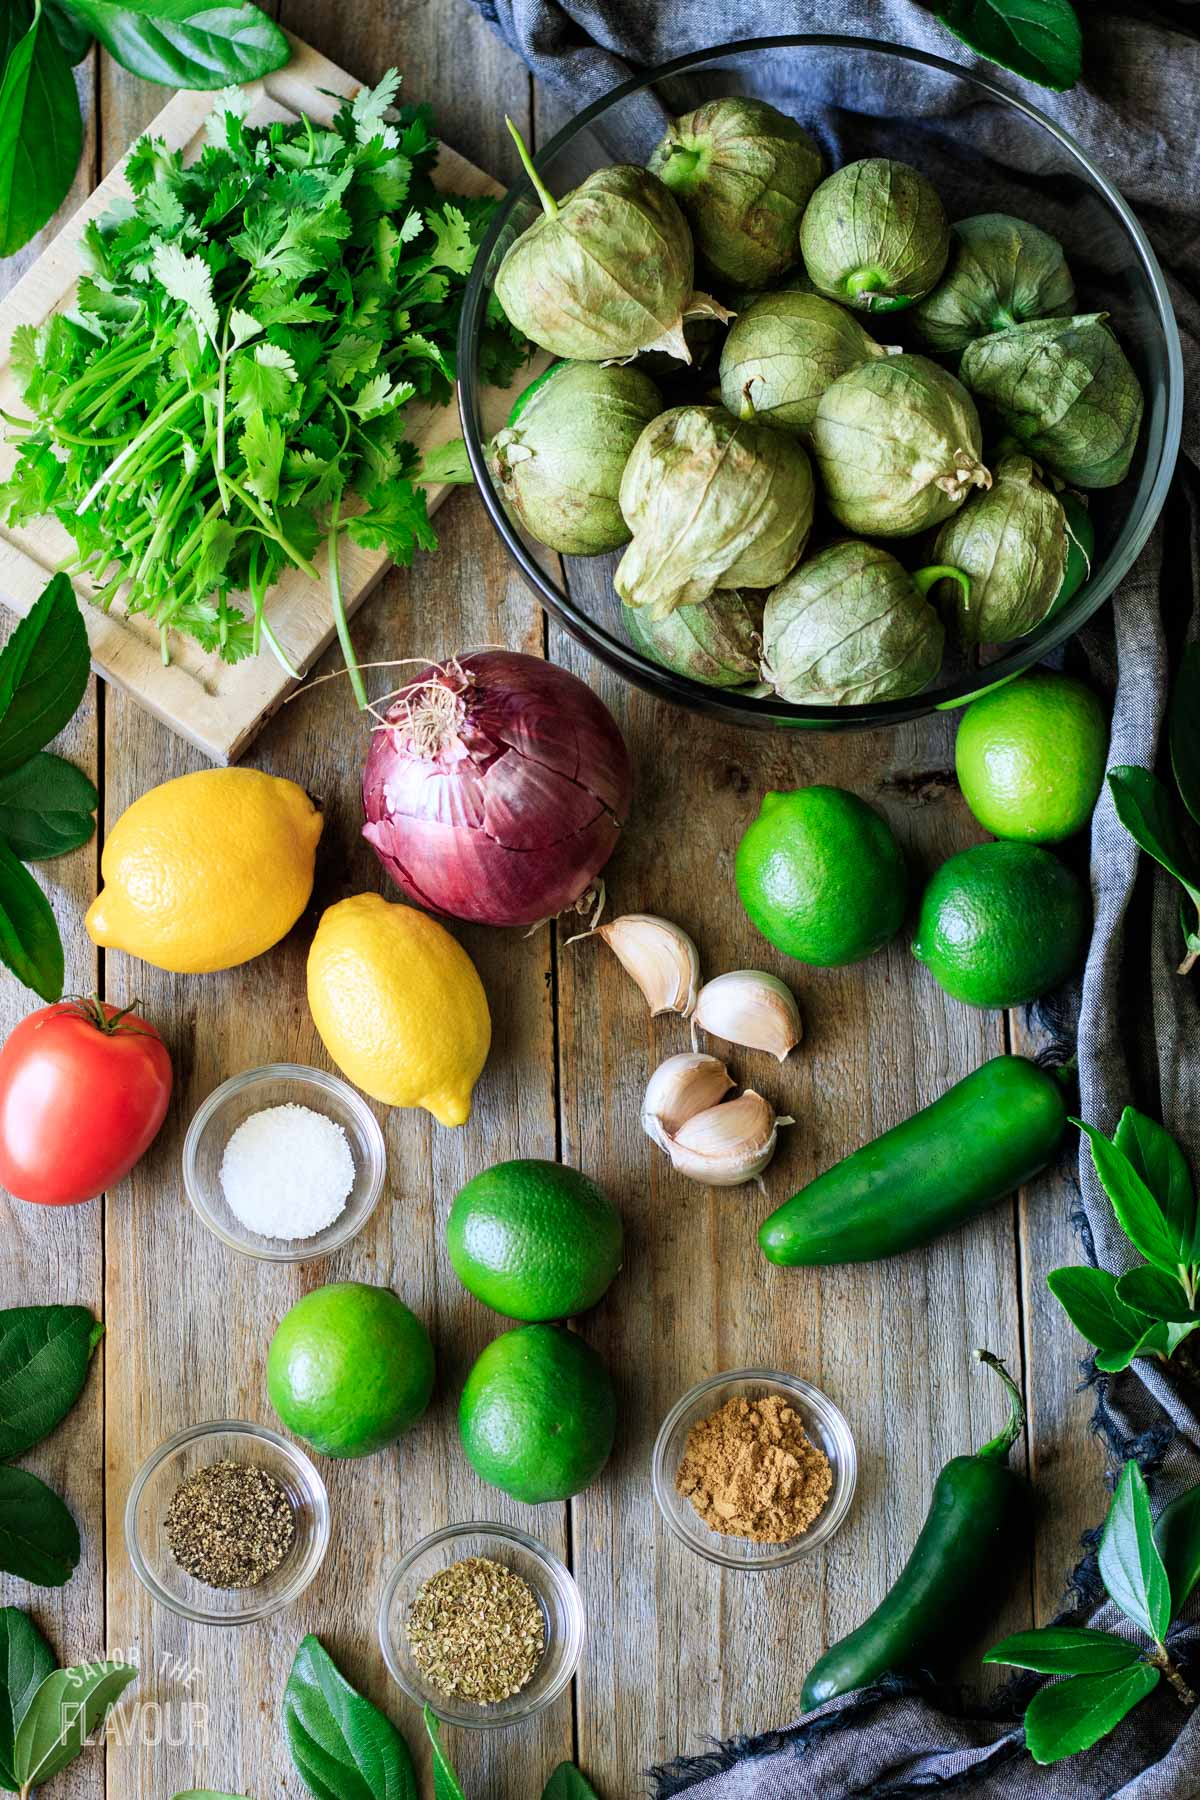 ingredients for Chipotle tomatillo green salsa